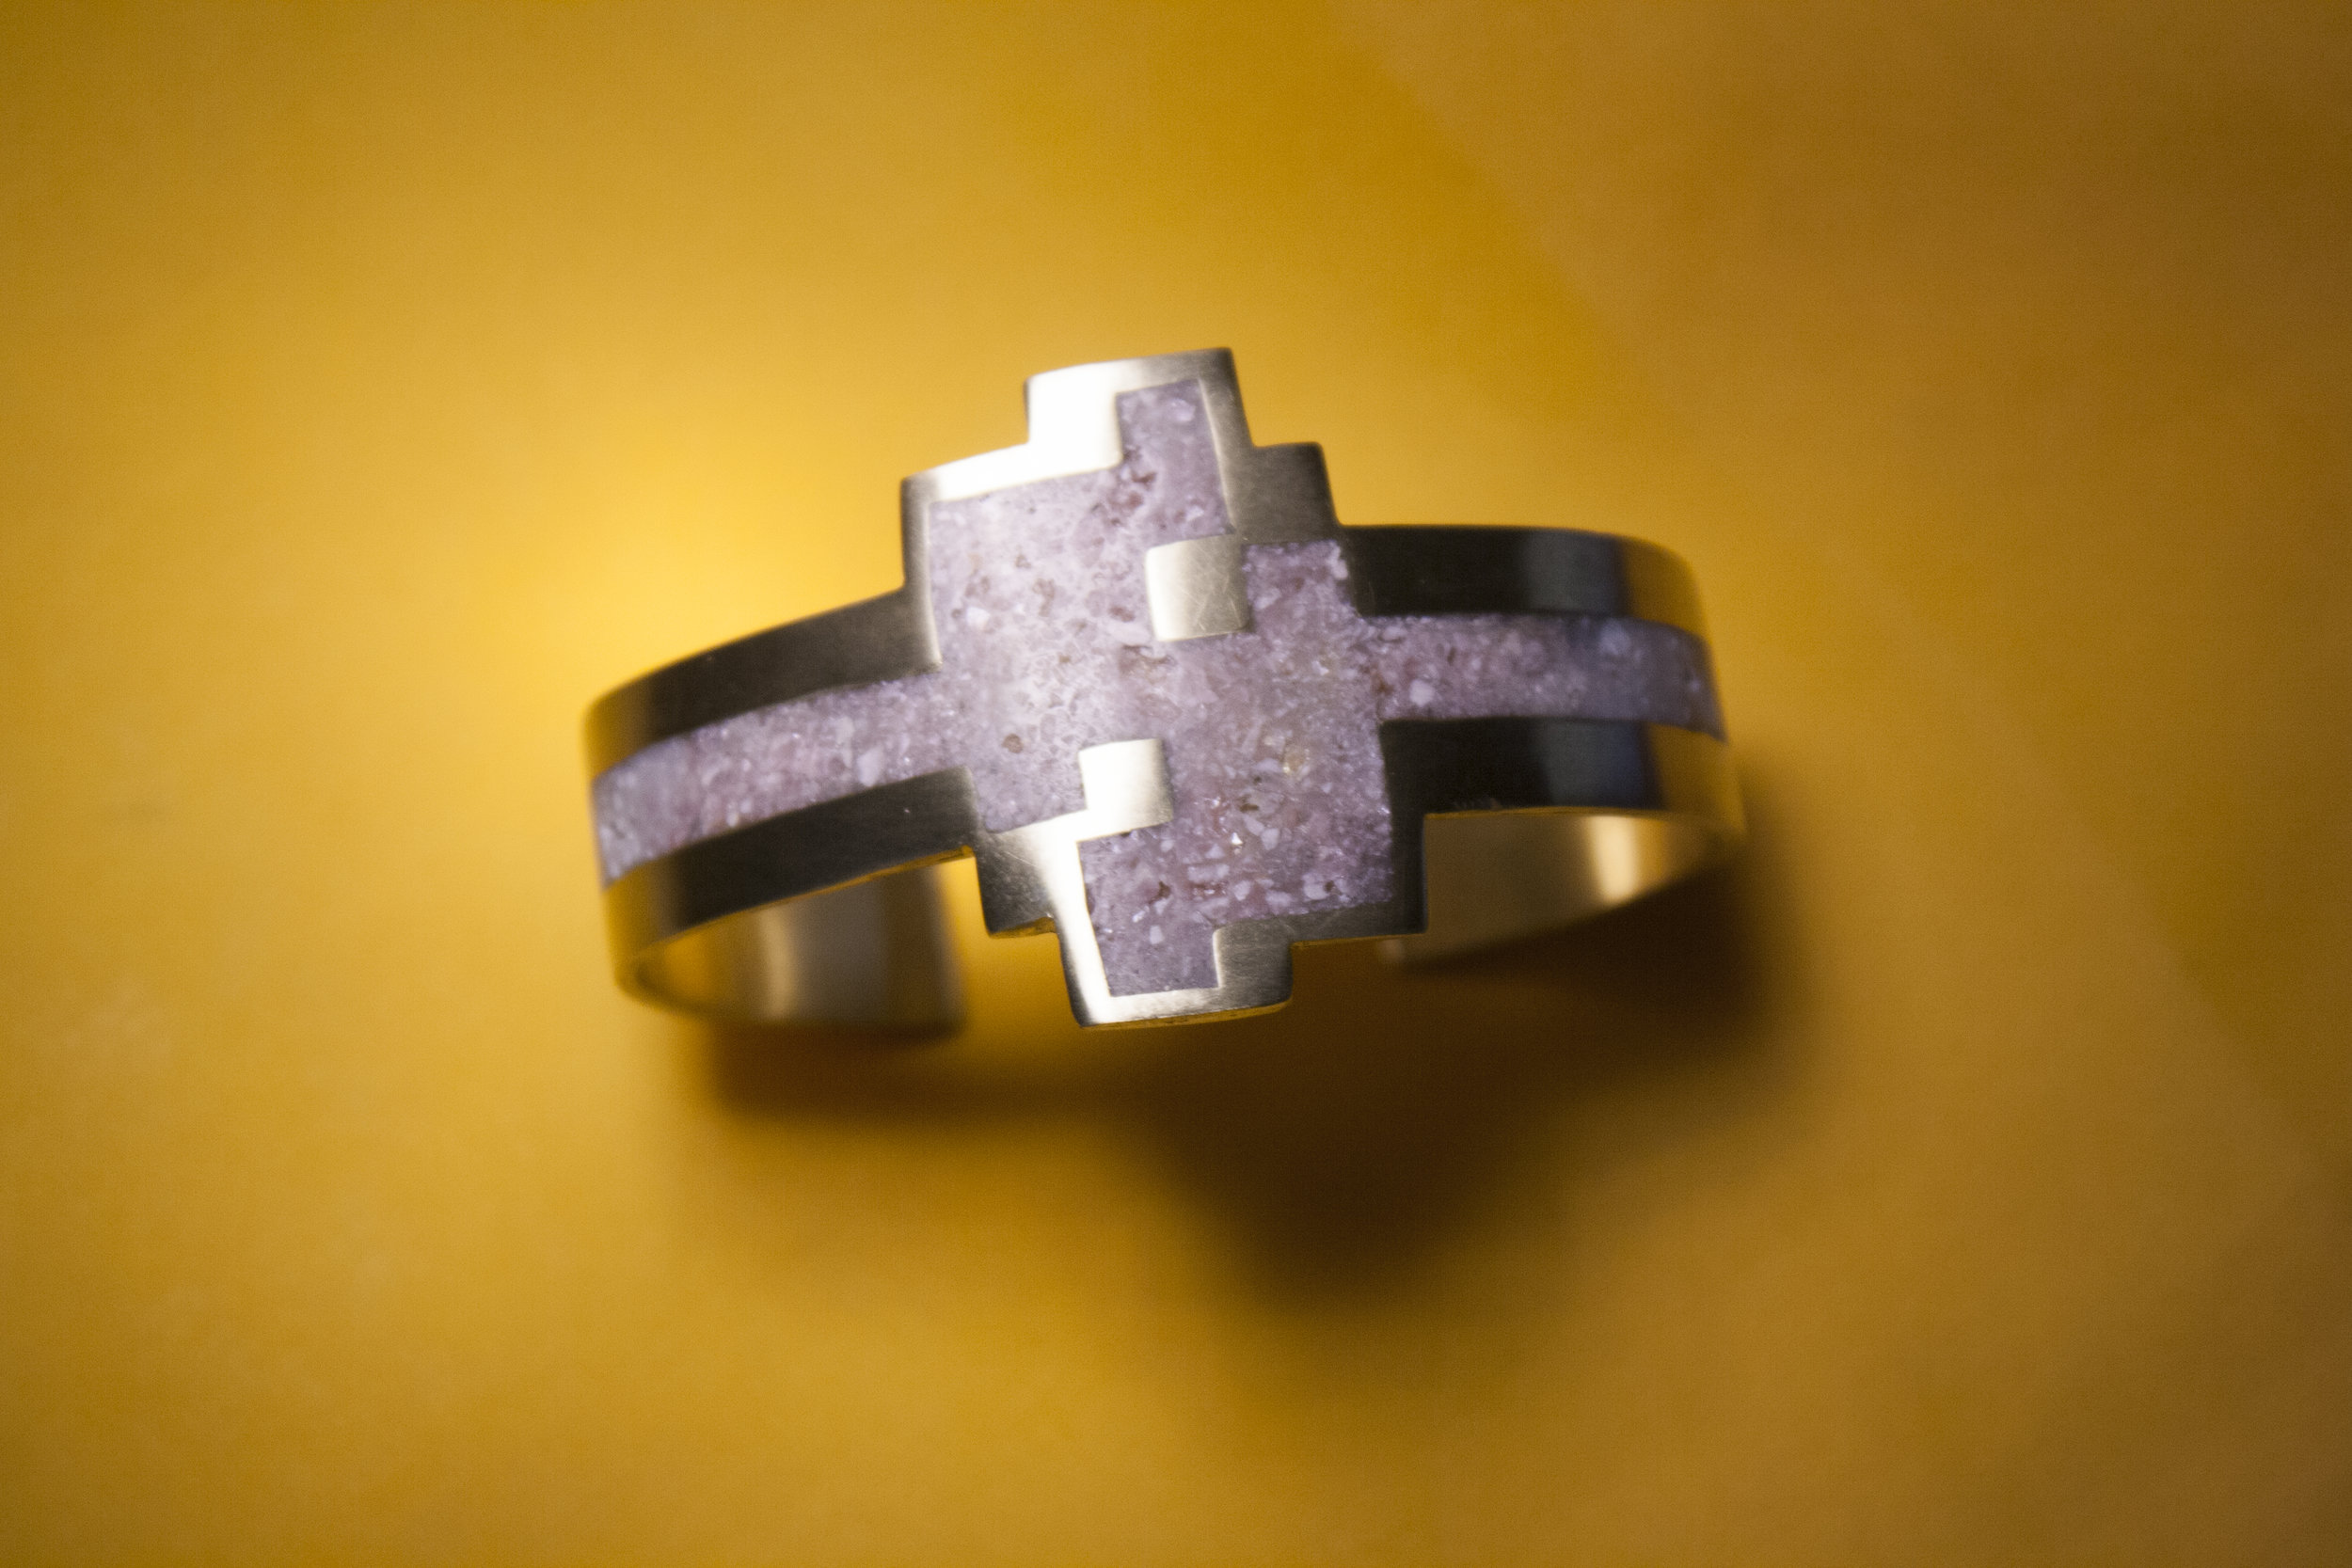 2 layer brass cuff with crushed stone inlay.